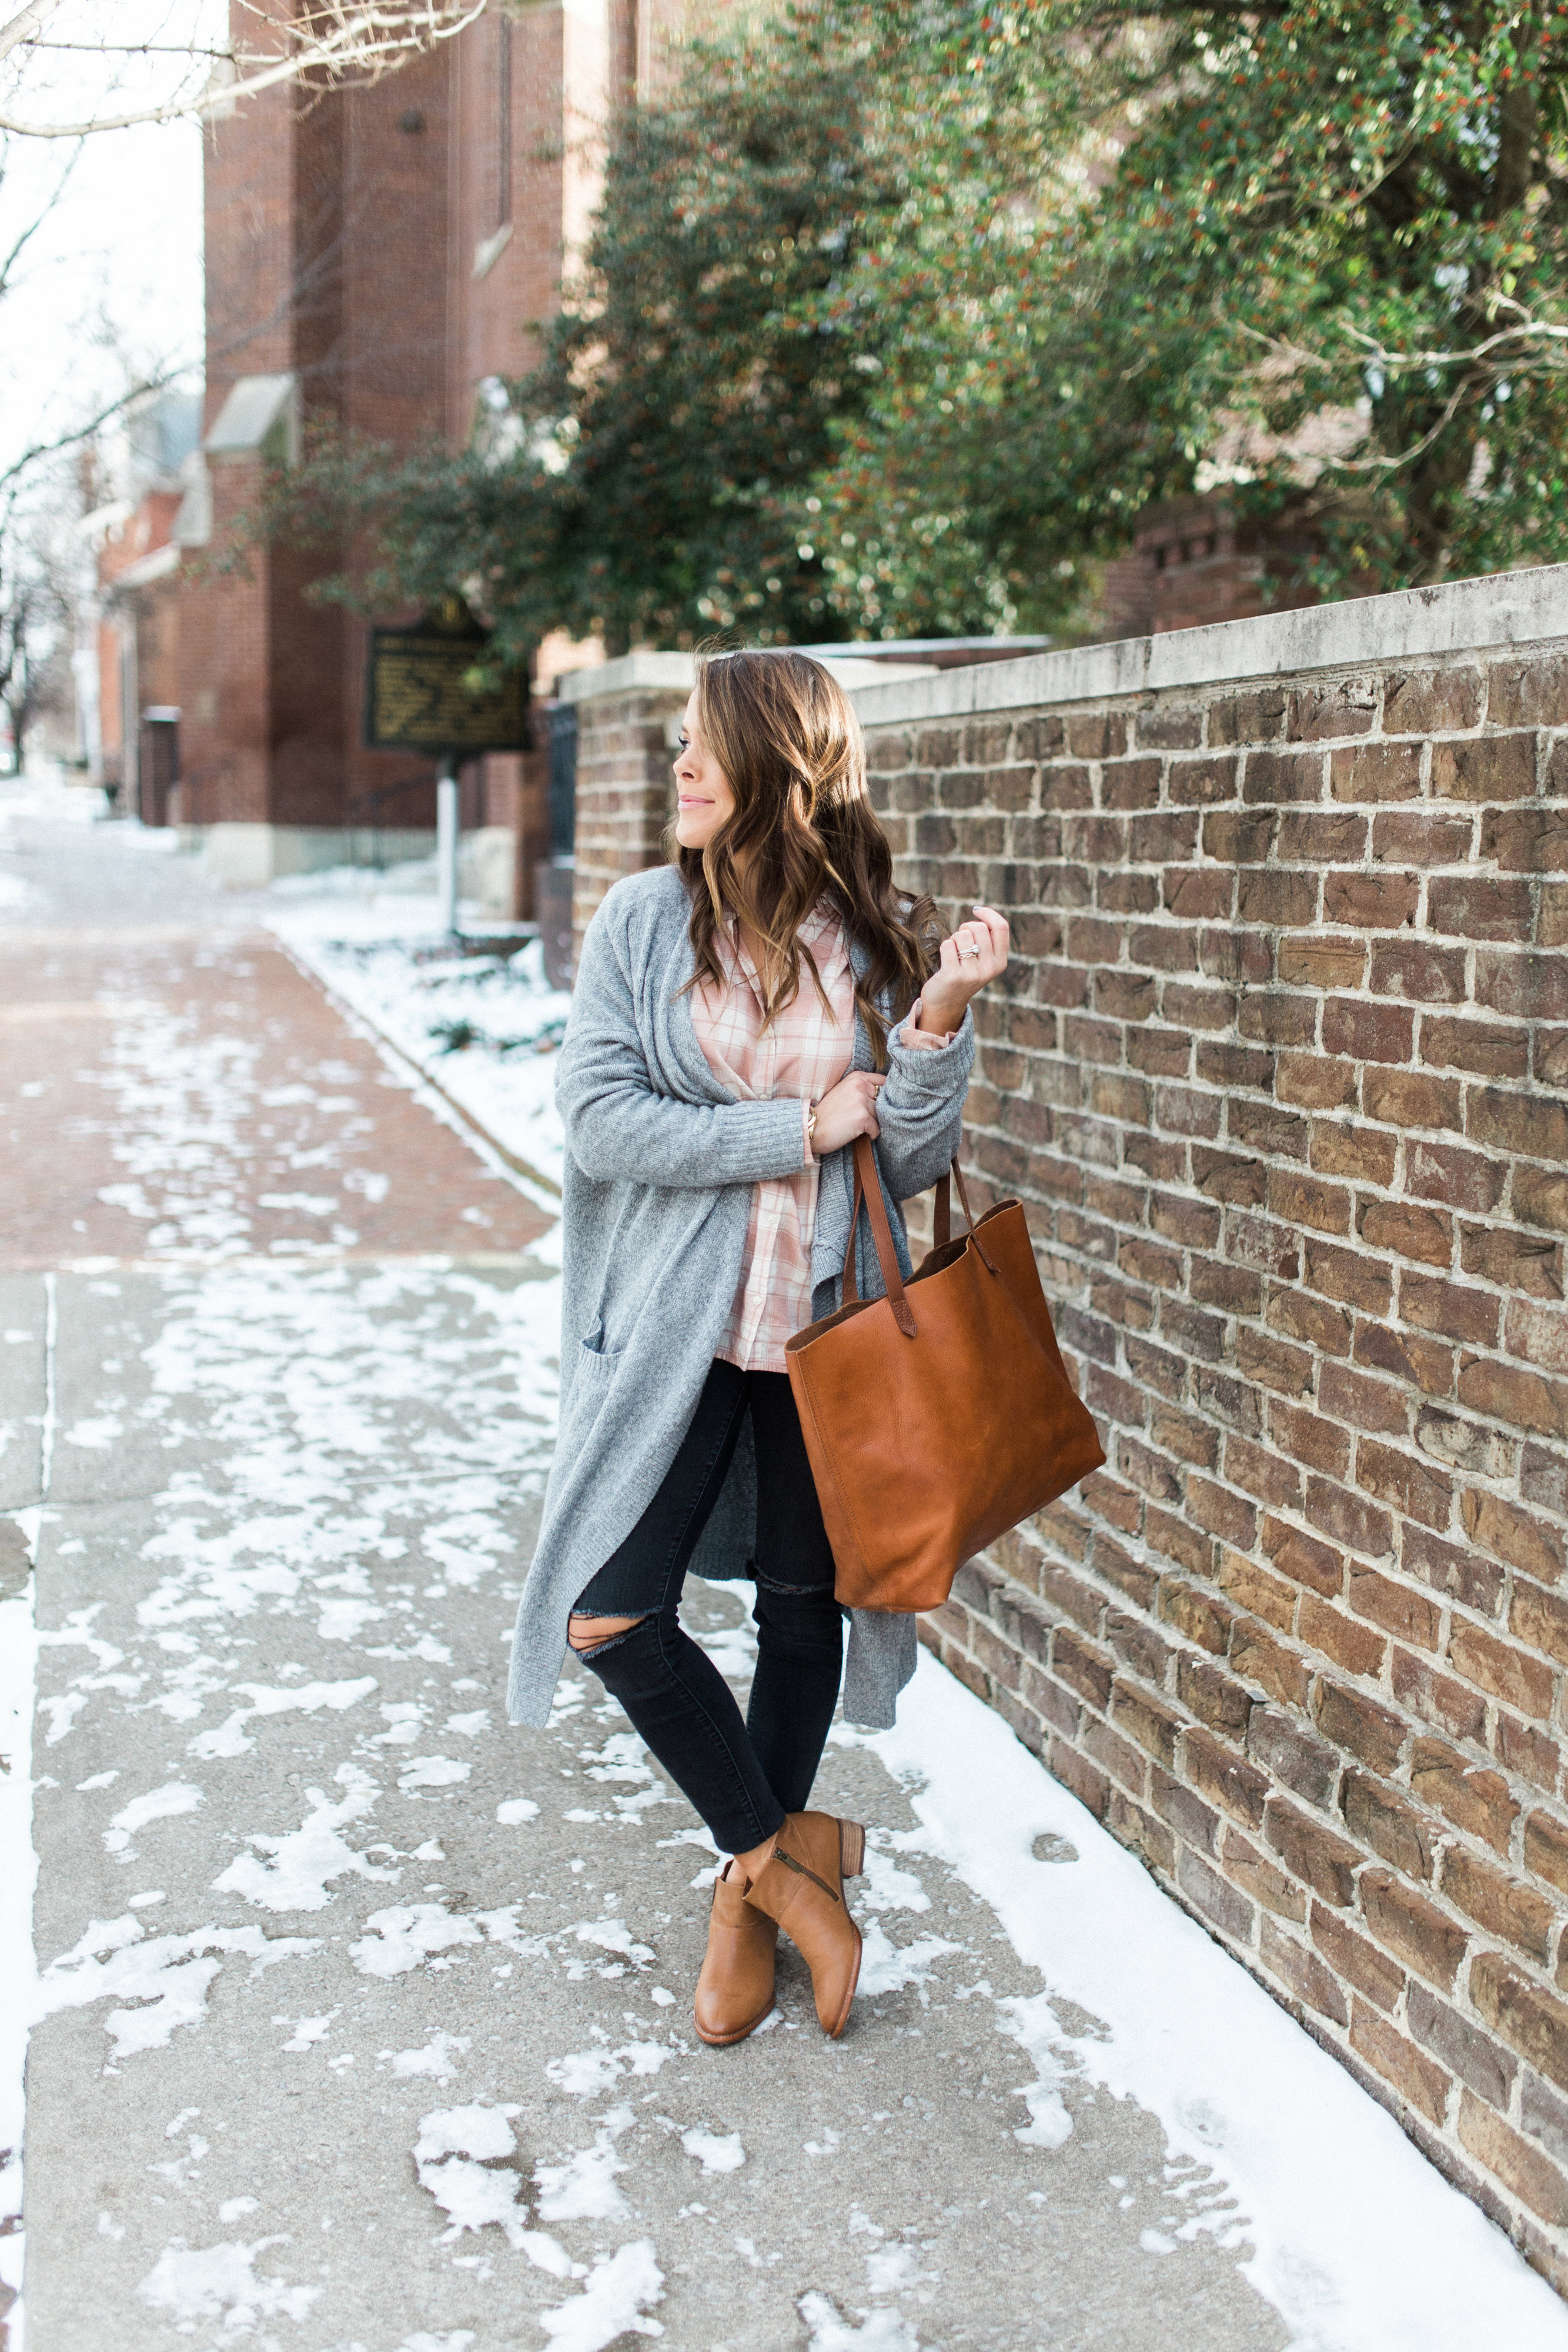 Winter Outfit Inspiration Ft. Madewell Pink Plaid Shirt, Long Cardigan, Madewell Transport Tote, Distressed Denim